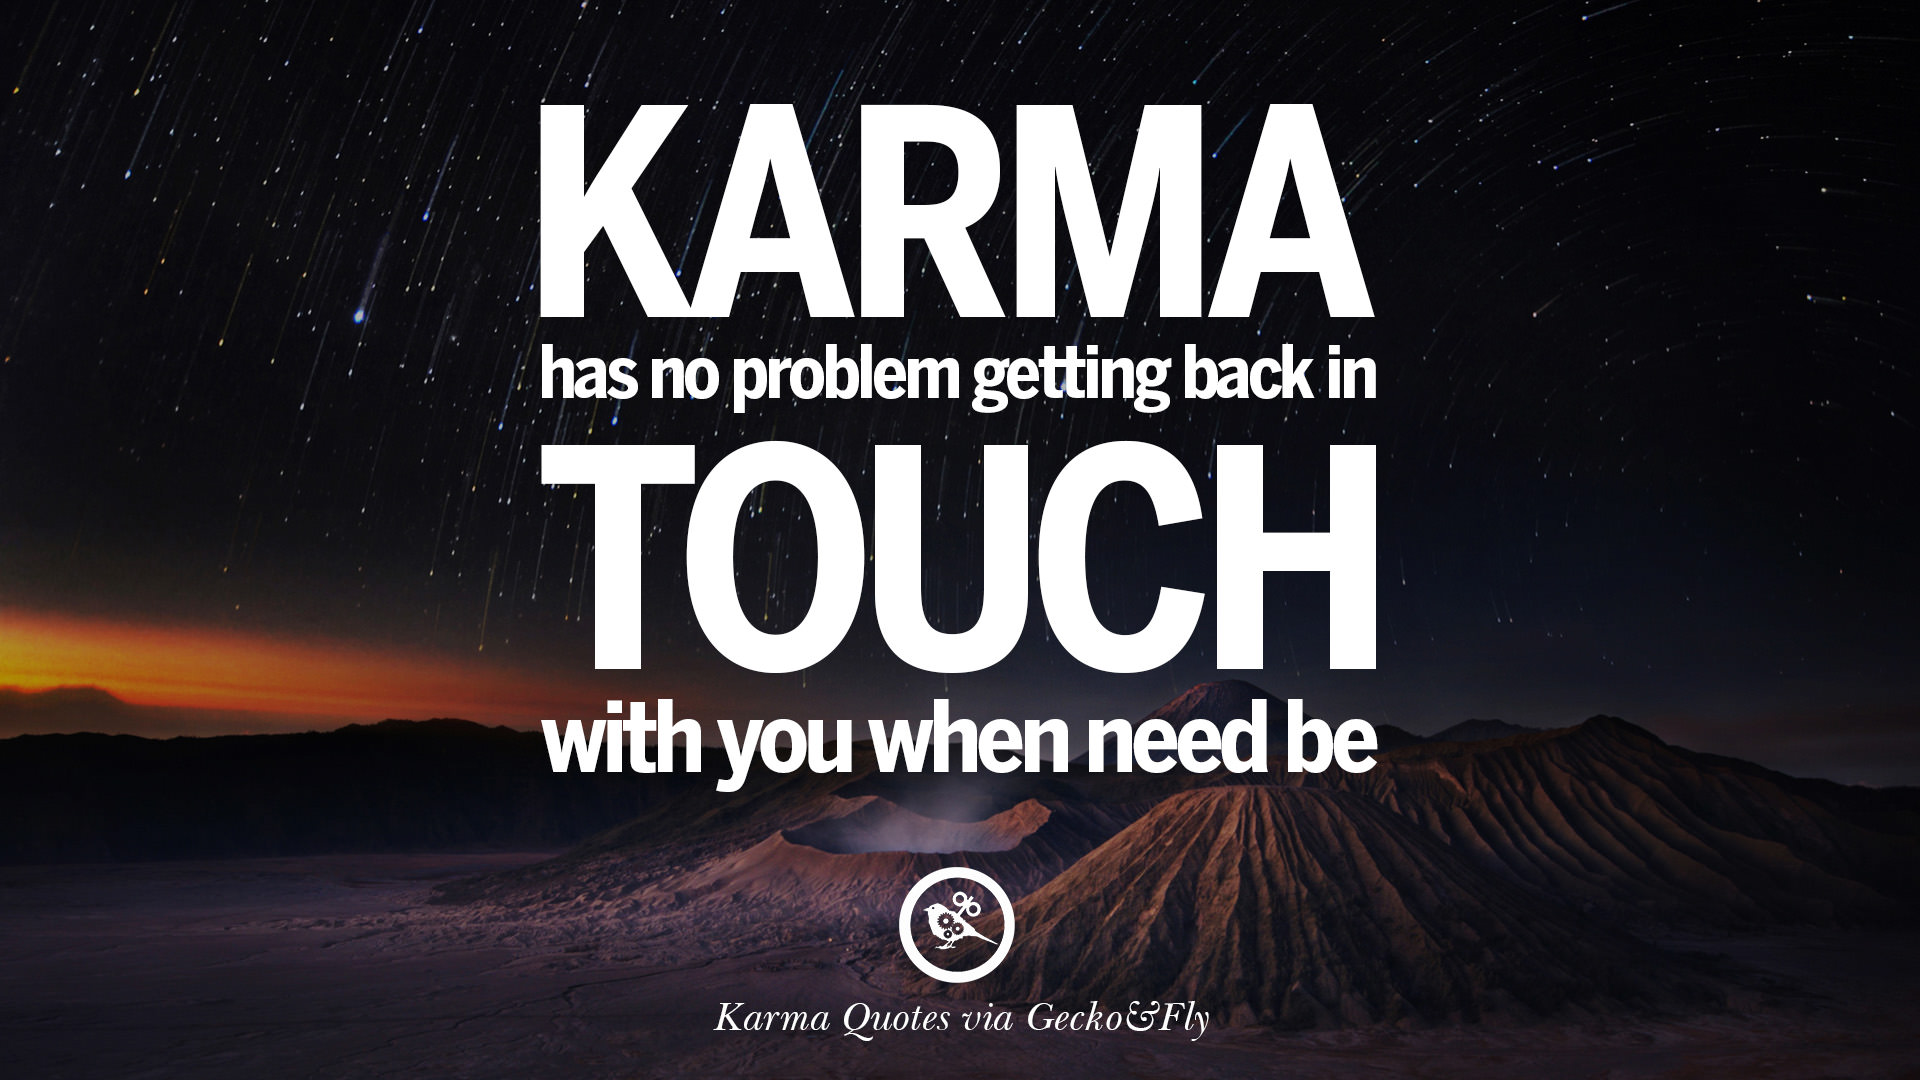 Positive Vibes Quotes Wallpaper 18 Good Karma Quotes On Relationship Revenge And Life